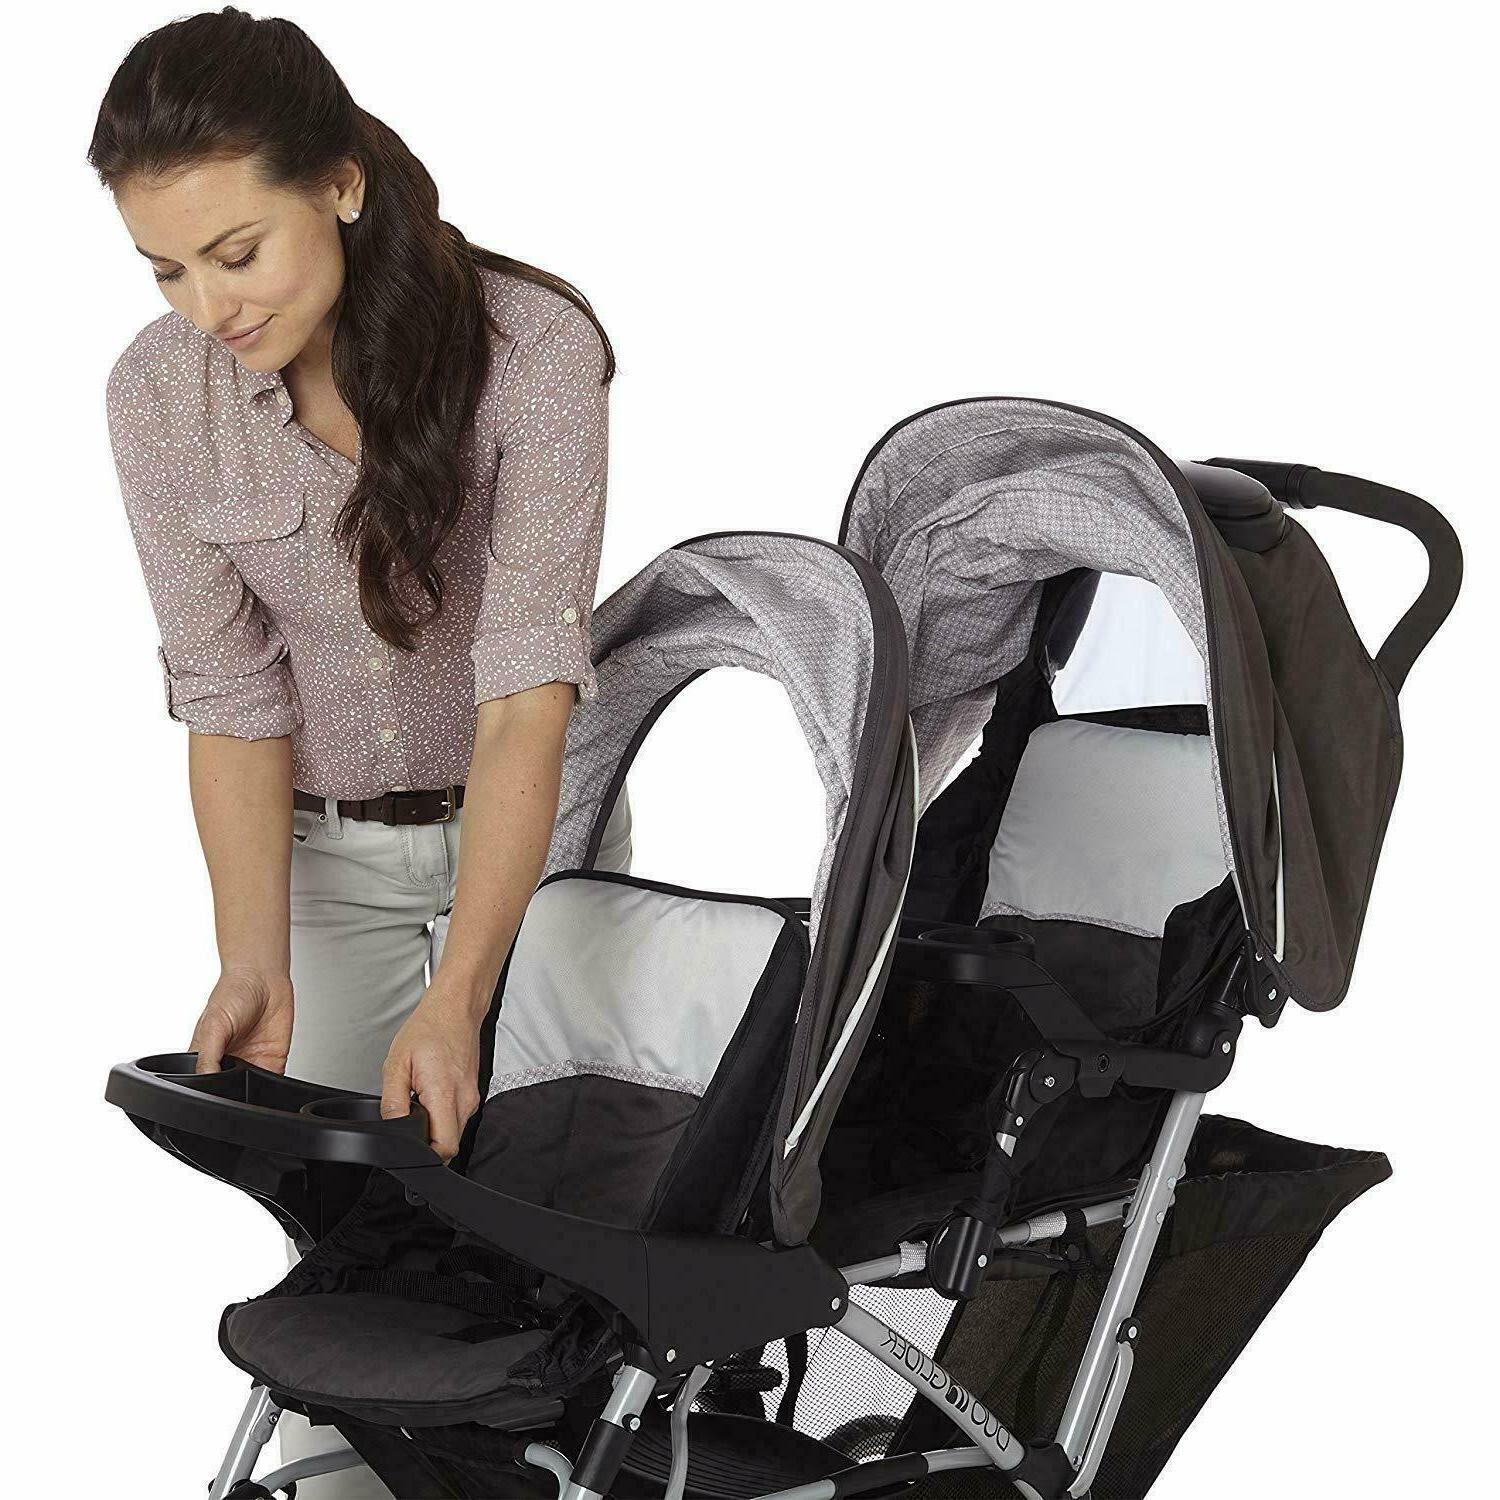 GRACO BABY DOUBLE FOLDABLE BUGGY